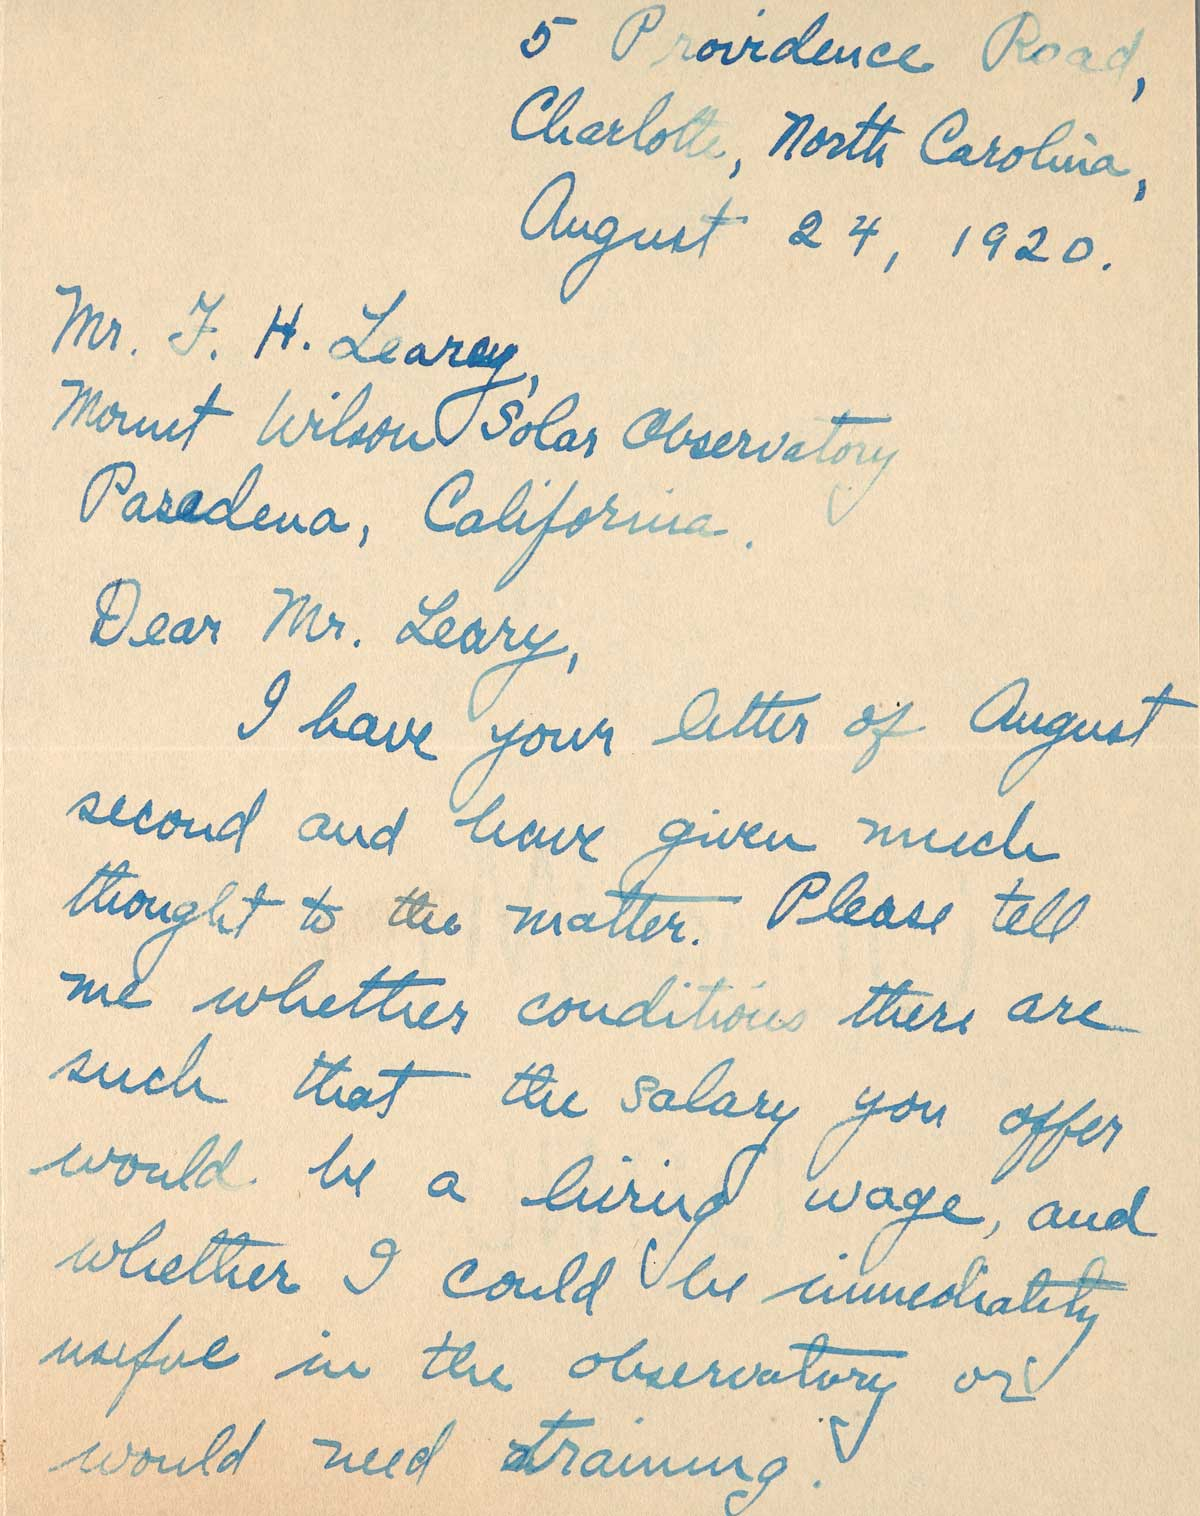 Letter to F.H. Seares of Mt. Wilson observatory from Charlotte Abbott p1 | Image courtesy of the Observatories of the Carnegie Institution for Science Collection at the Huntington Library, San Marino, California